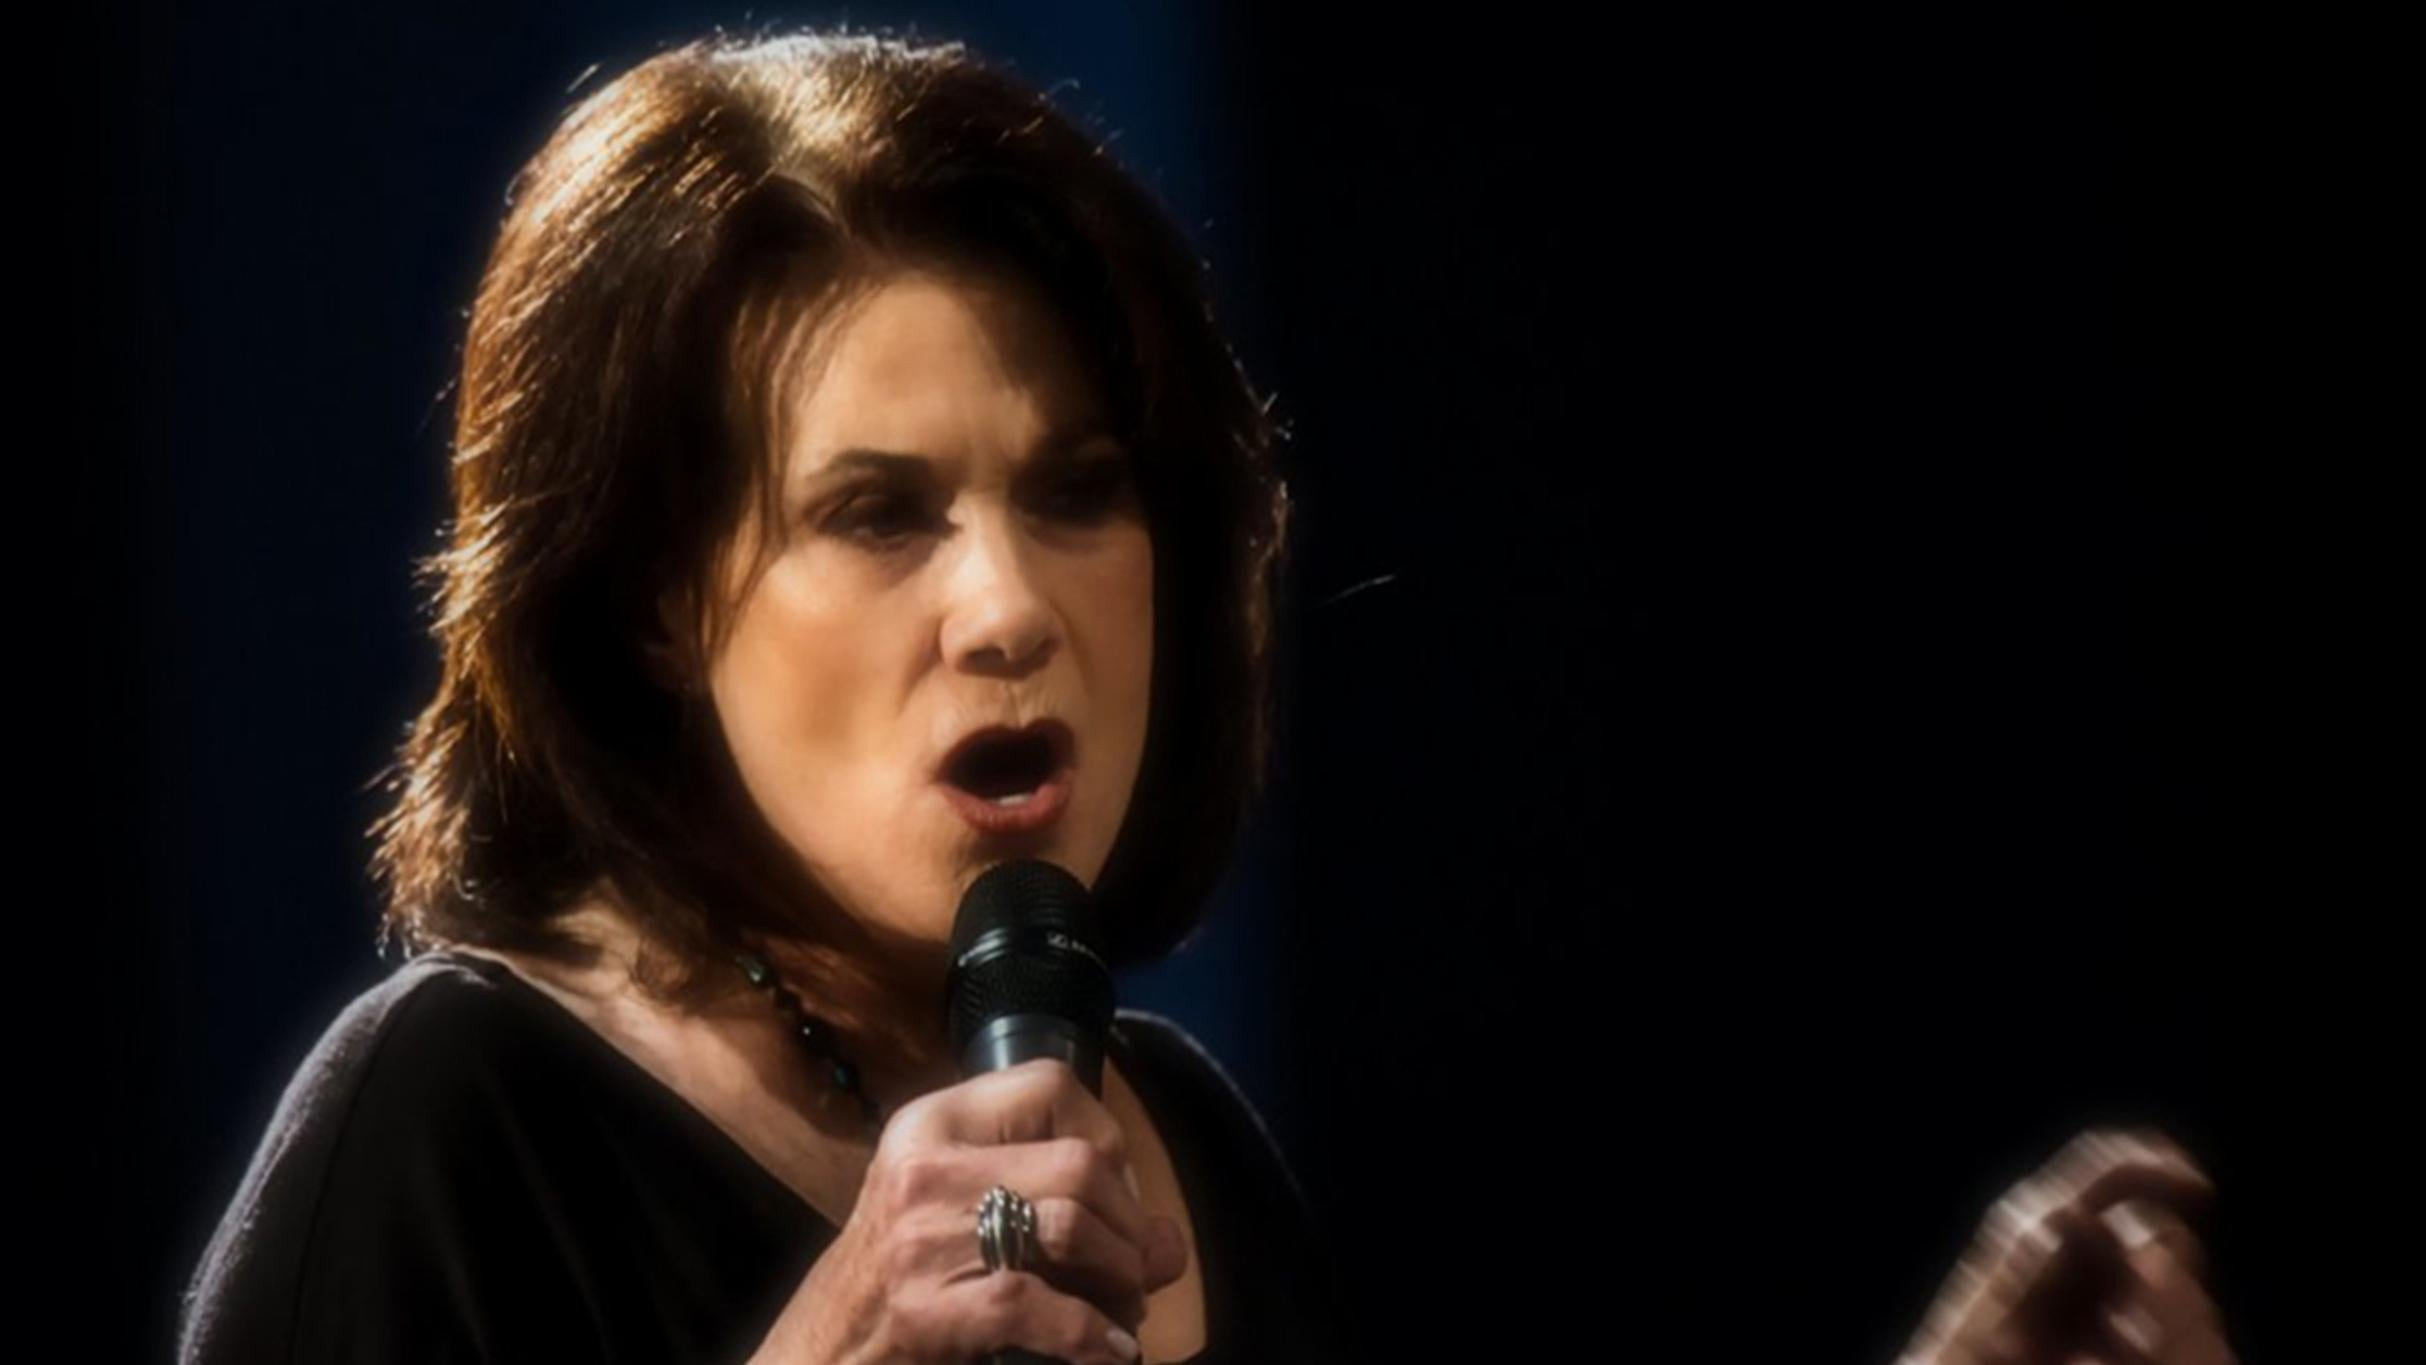 Ralna English singing on microphone.